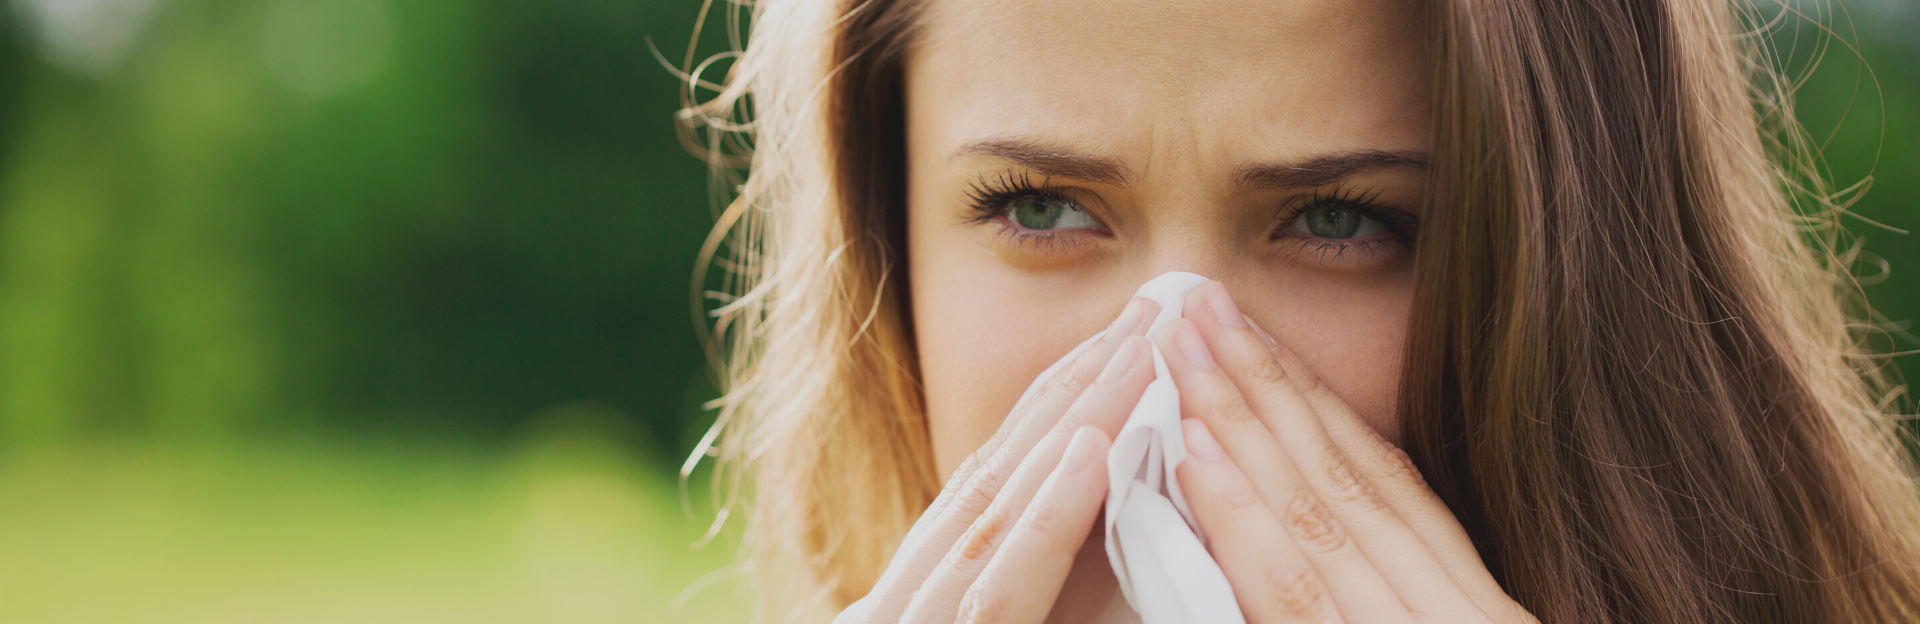 How to prevent getting a cold or flu this winter